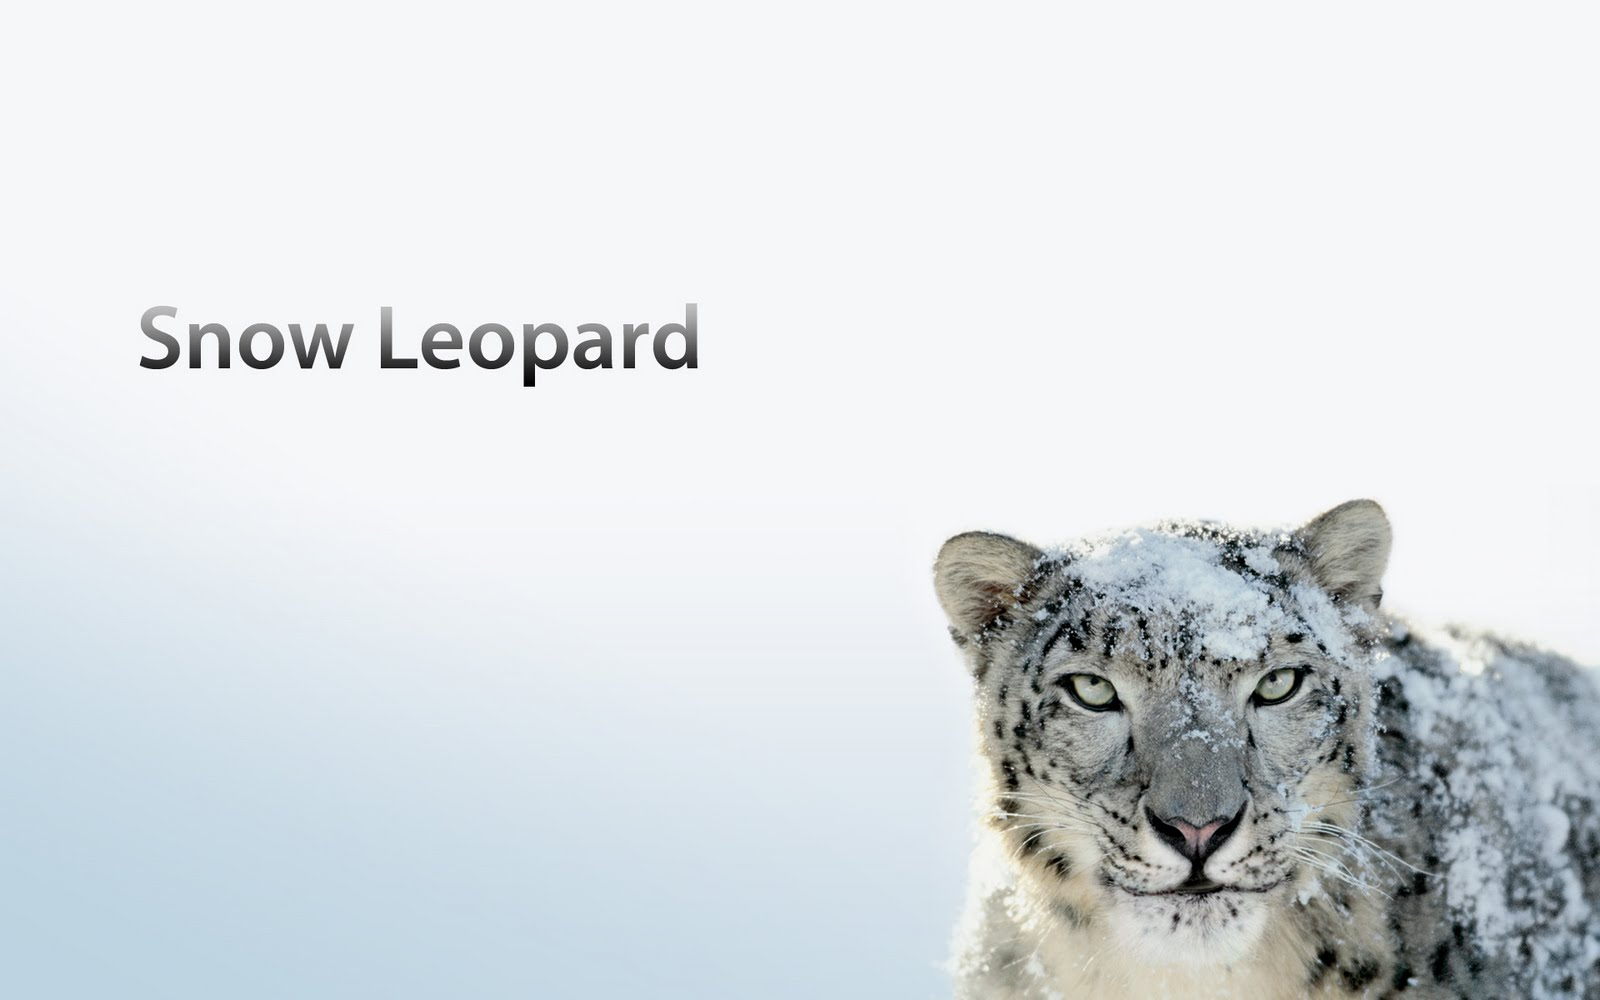 Apple mac os x snow leopard 10.6.7 part07